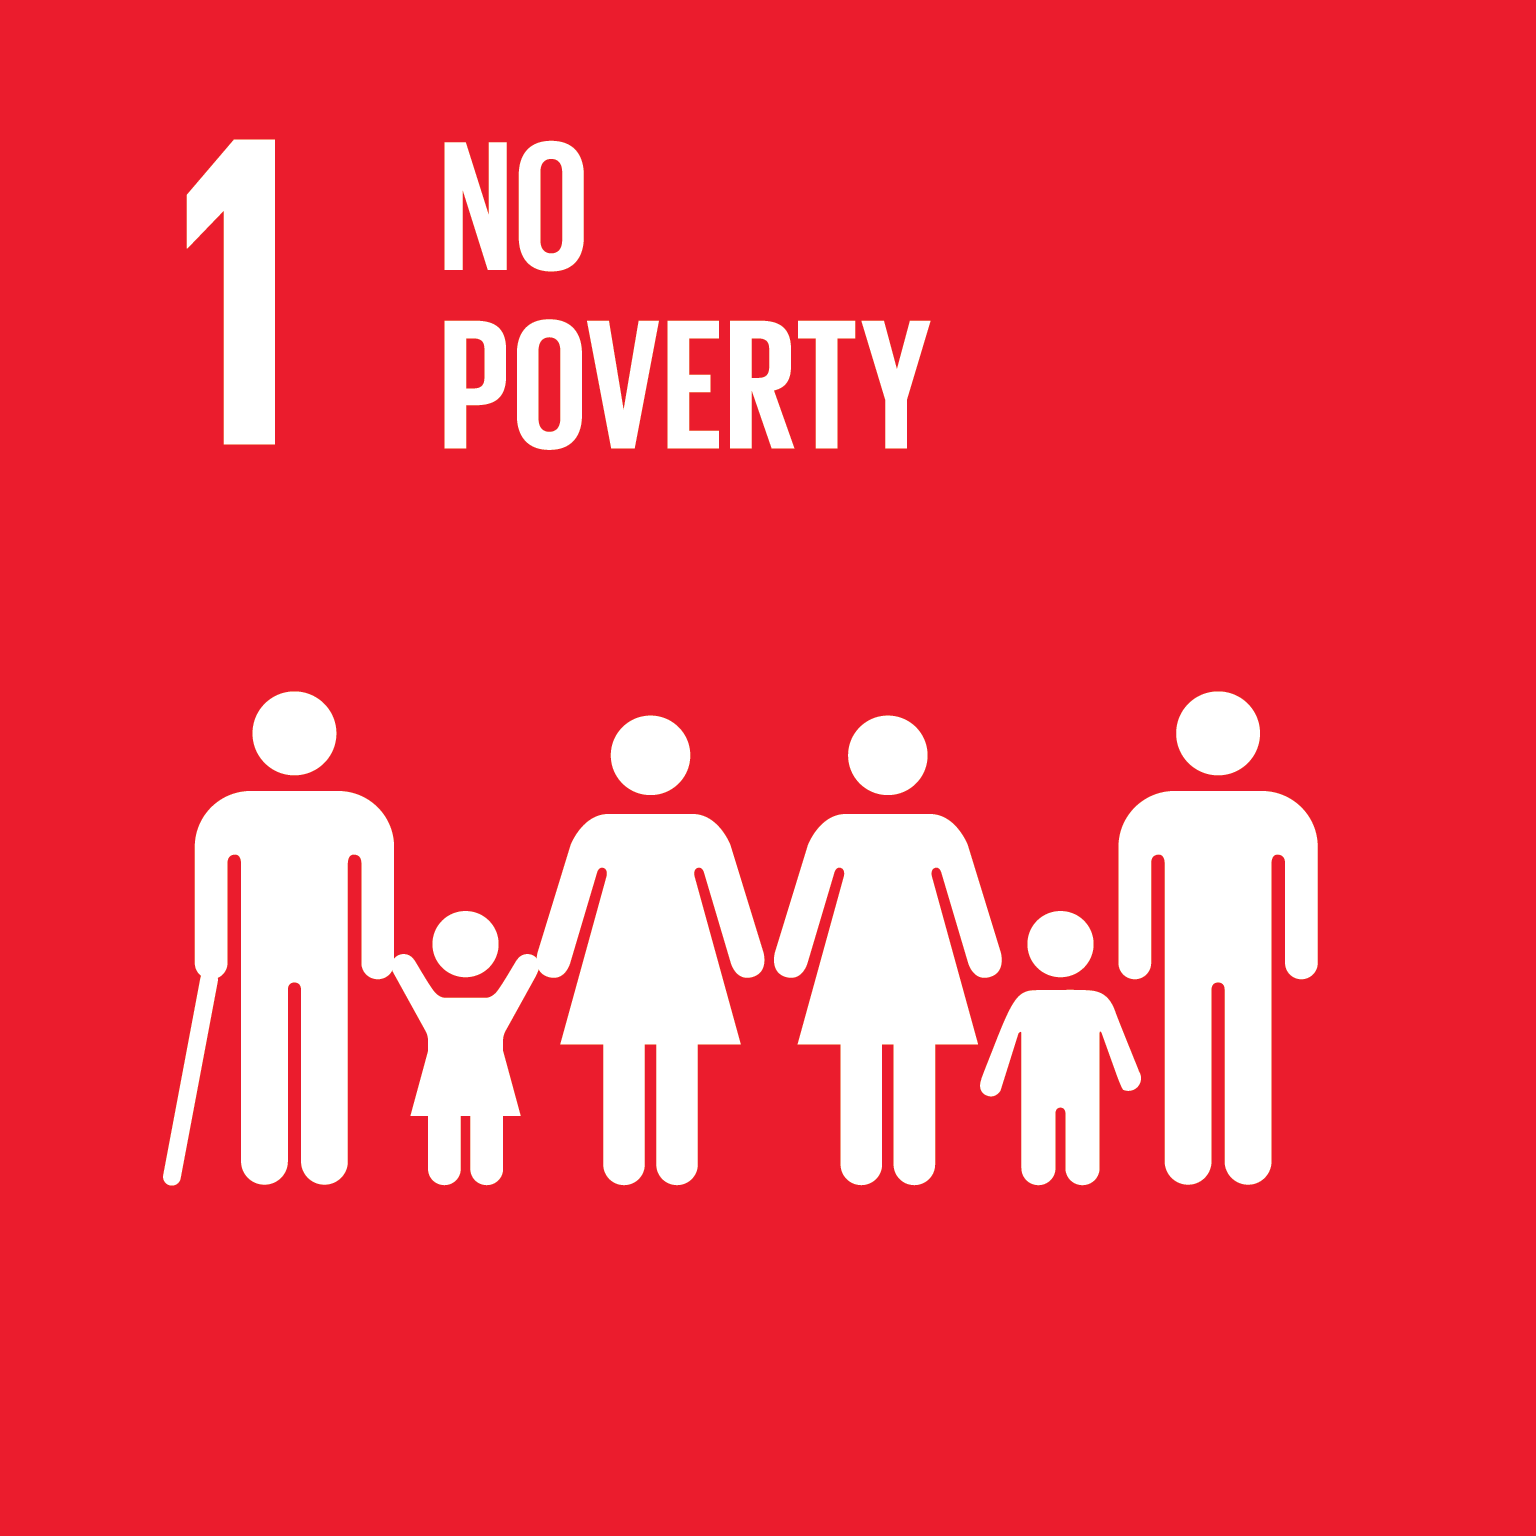 Goal 1 – No poverty